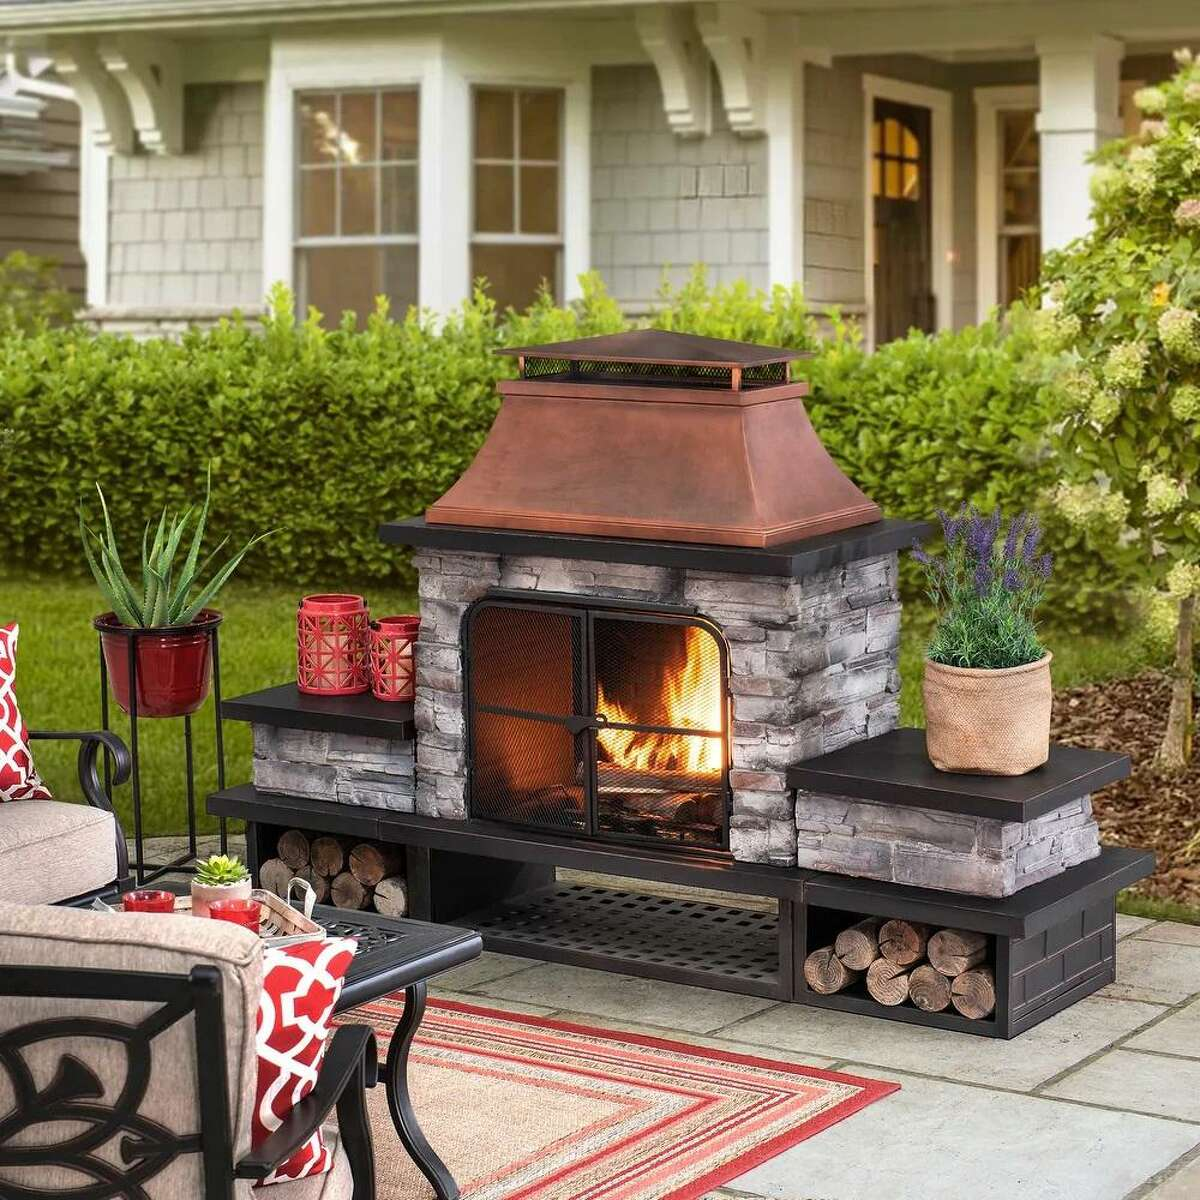 Bel Aire Steel and Faux Stone Outdoor Fireplace by Sunjoy Group. $1,530.